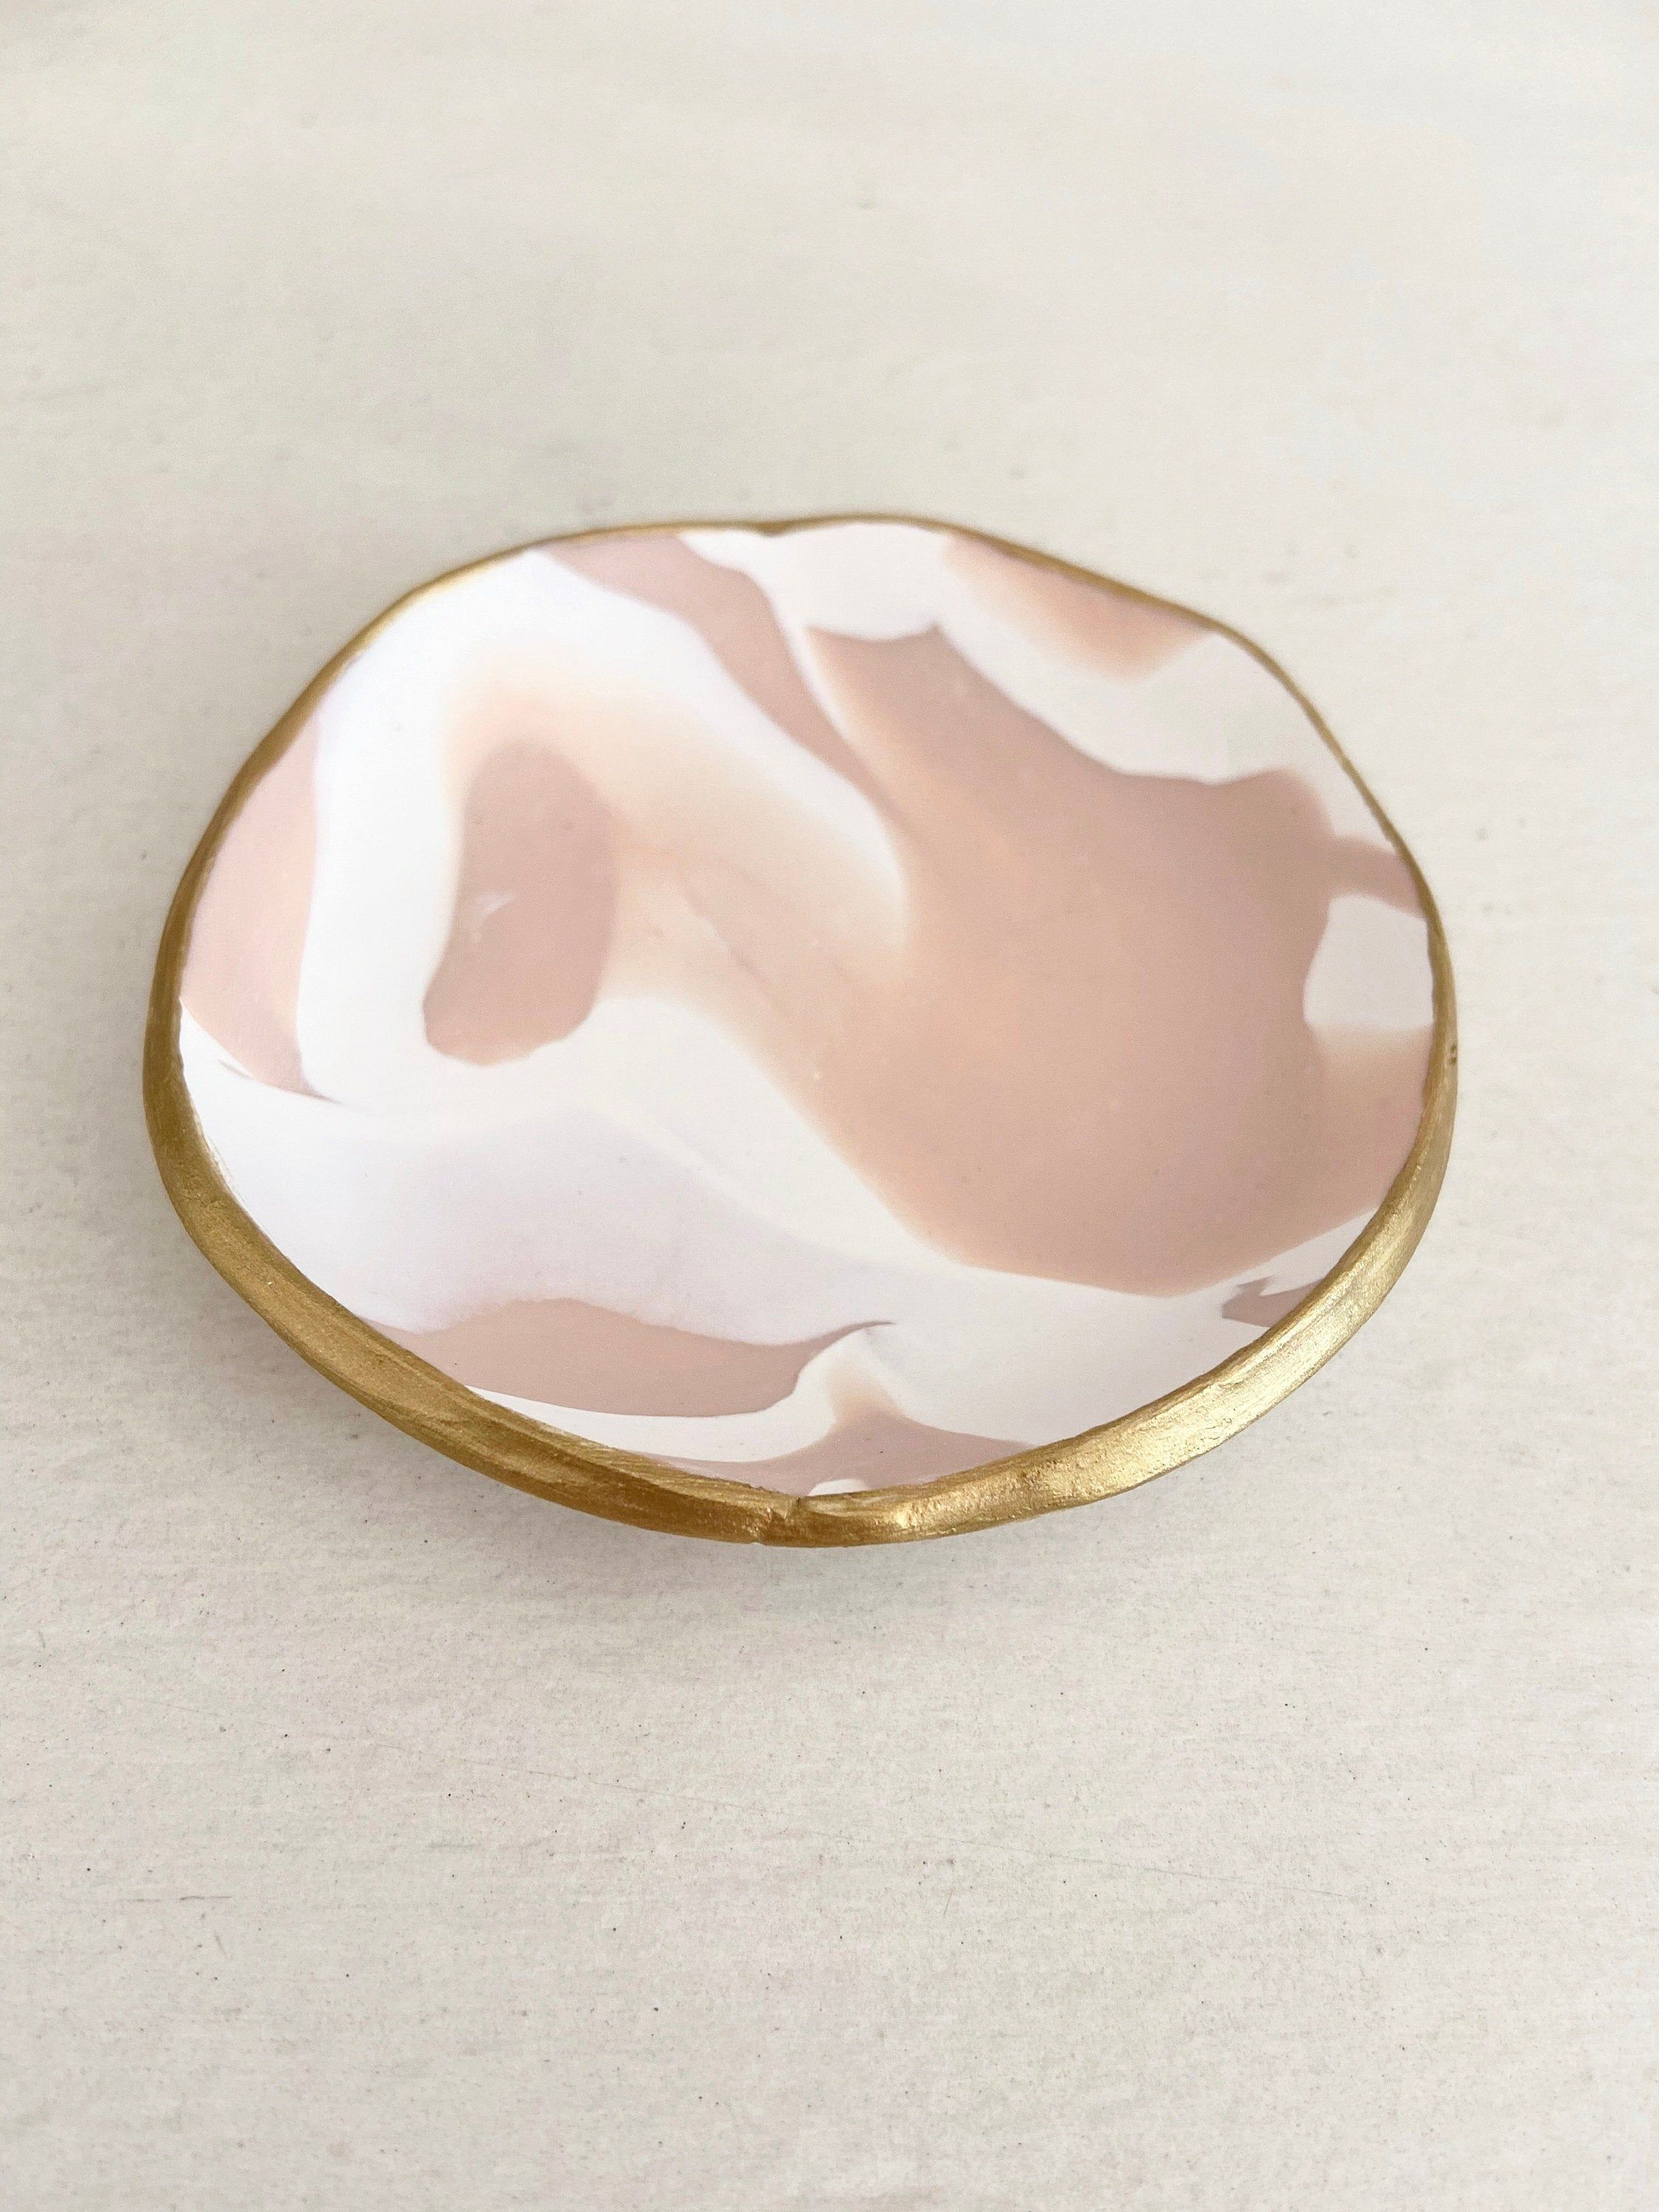 Wedding Favors Gift for Her Minimalist White /& Rose Gold Heart Jewelry Dish  Wedding Gift Engagement Gift